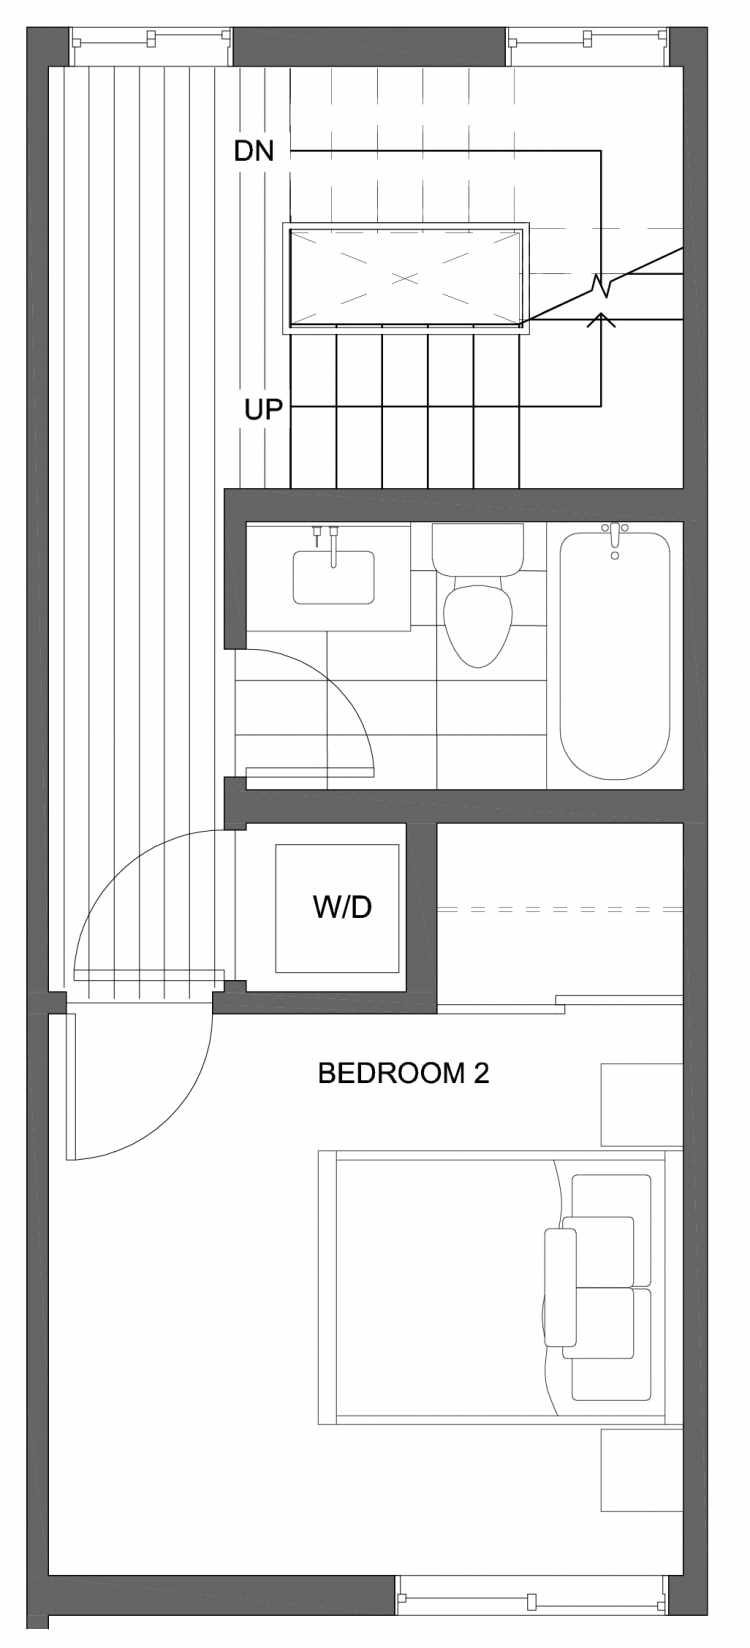 Second Floor Plan of 10429C Alderbrook Pl NW, One of the Jasmine Townhomes in the Greenwood Neighborhood of Seattle